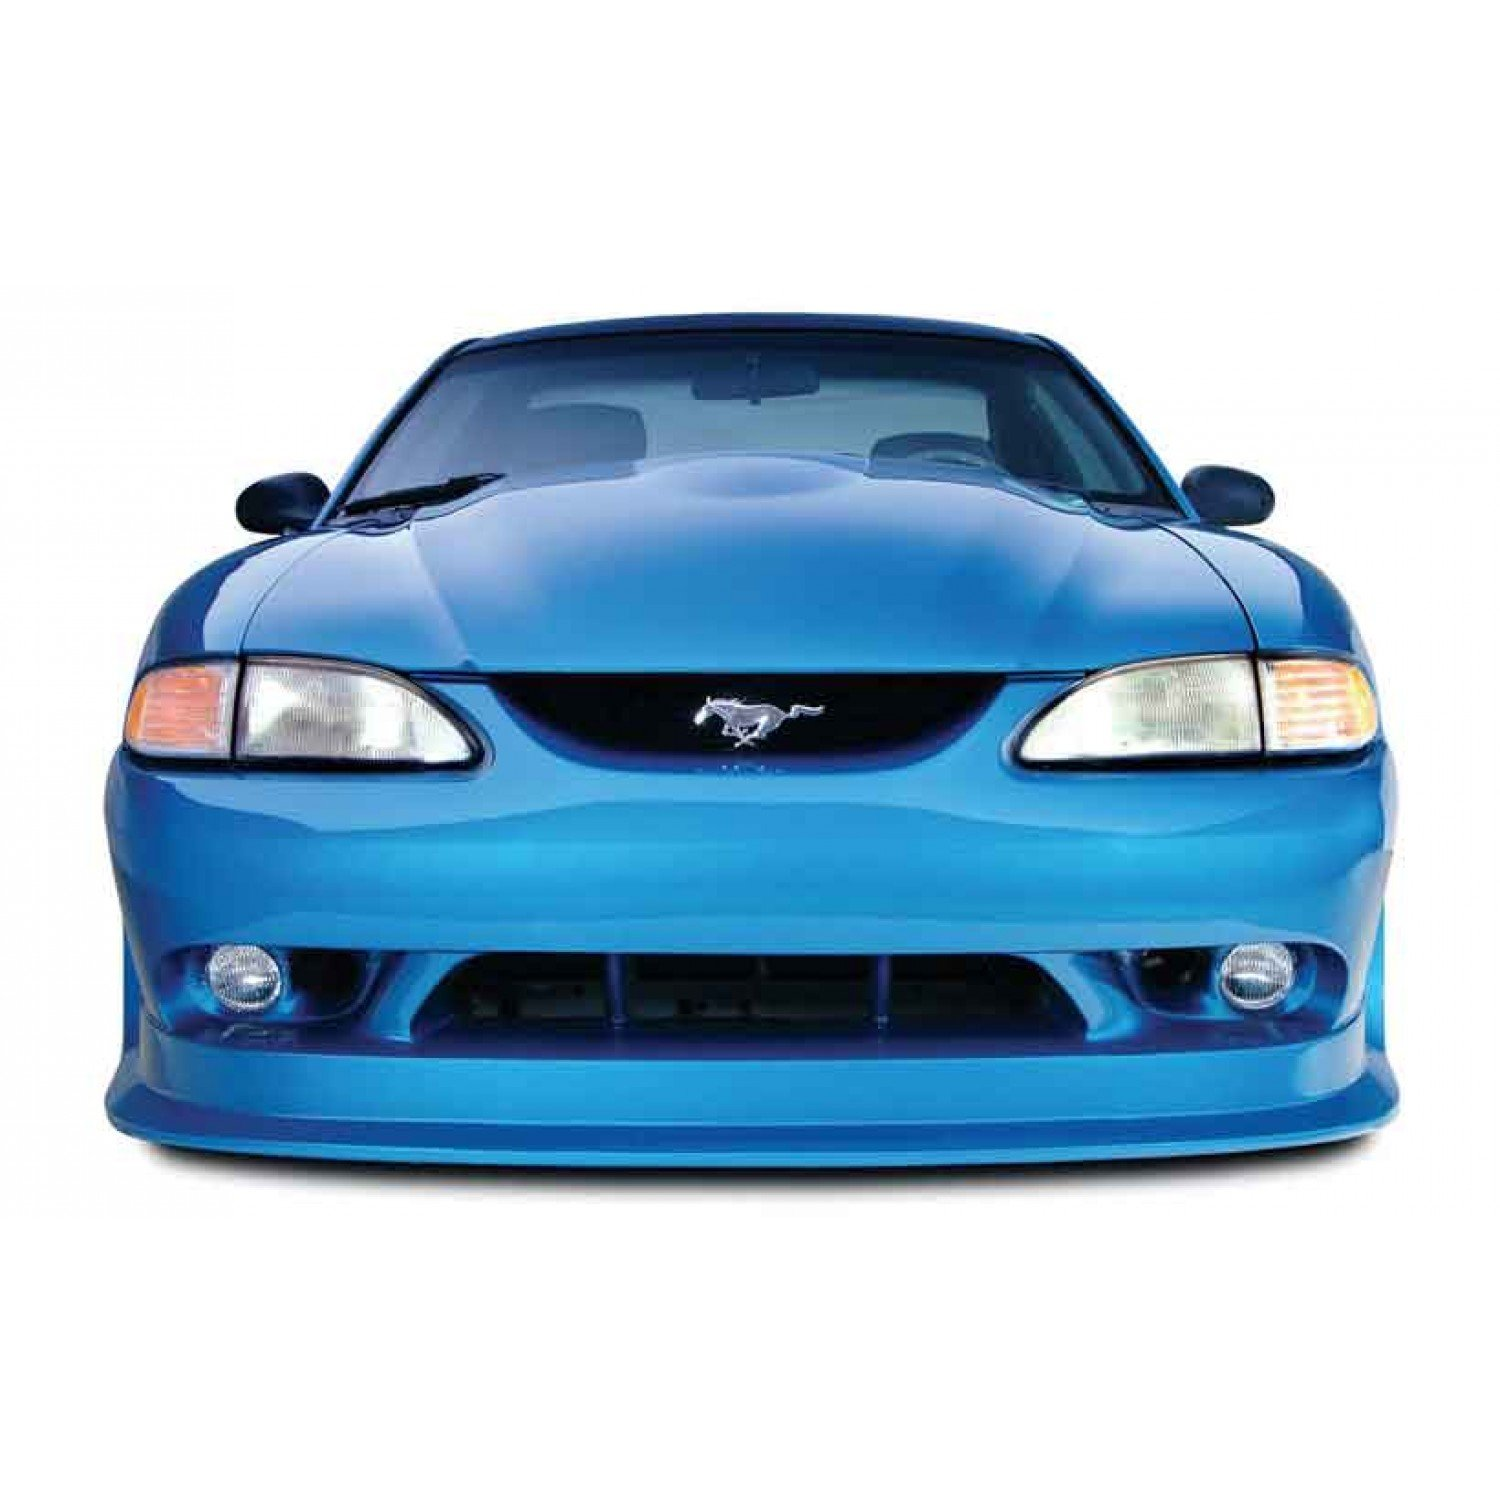 Ford mustang 1994 1998 cobra r style 1 piece polyurethane front bumper manufactured by kbd body kits extremely durable easy installation guaranteed